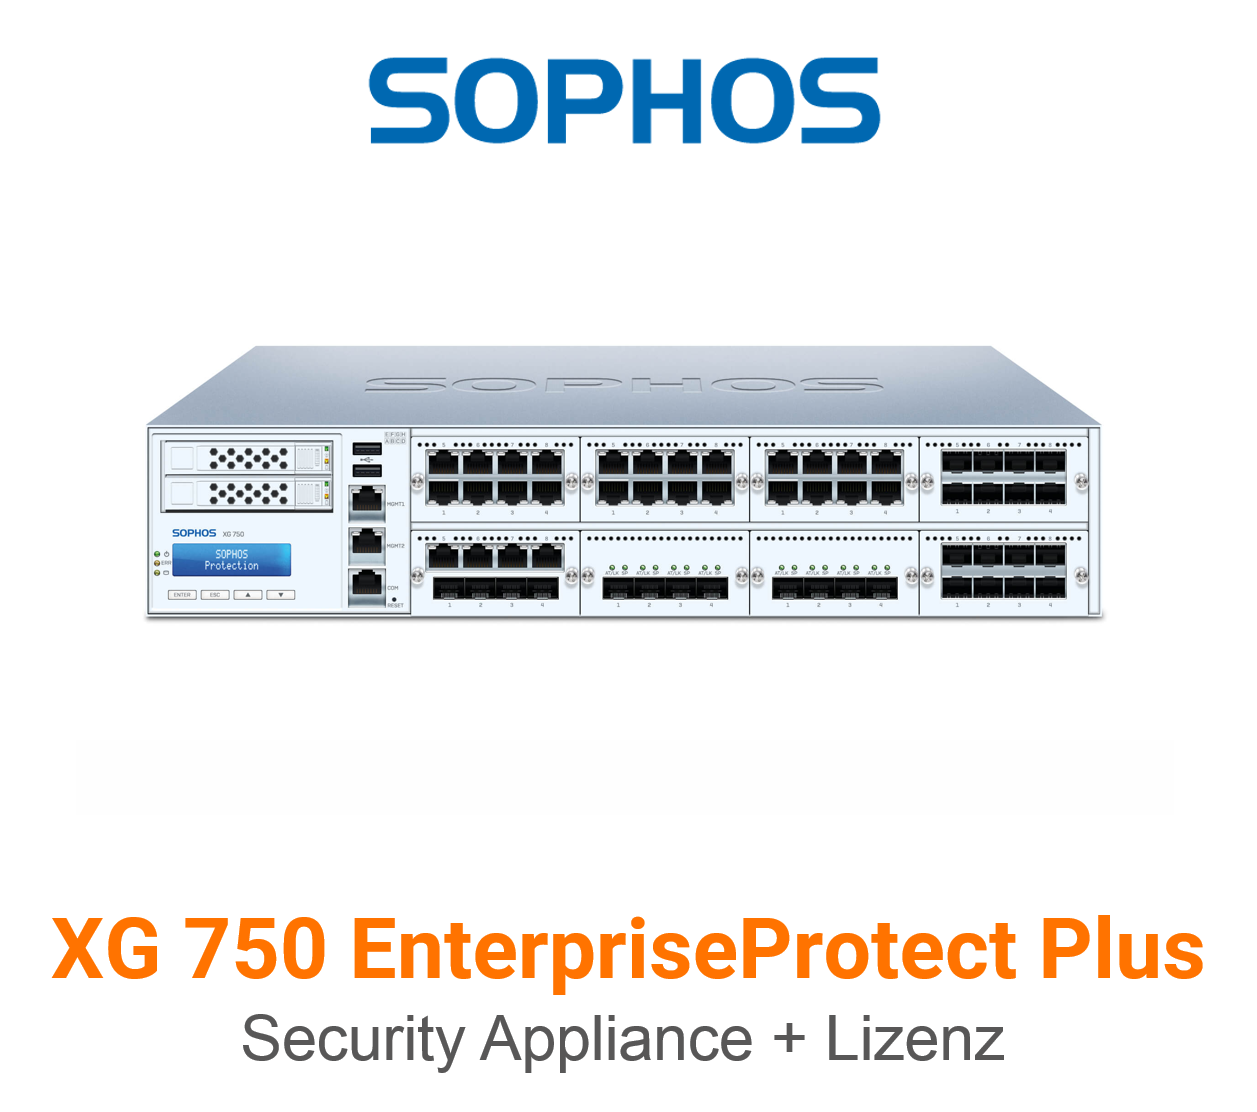 Sophos XG 750 EnterpriseProtect Plus Bundle (Hardware + Lizenz)